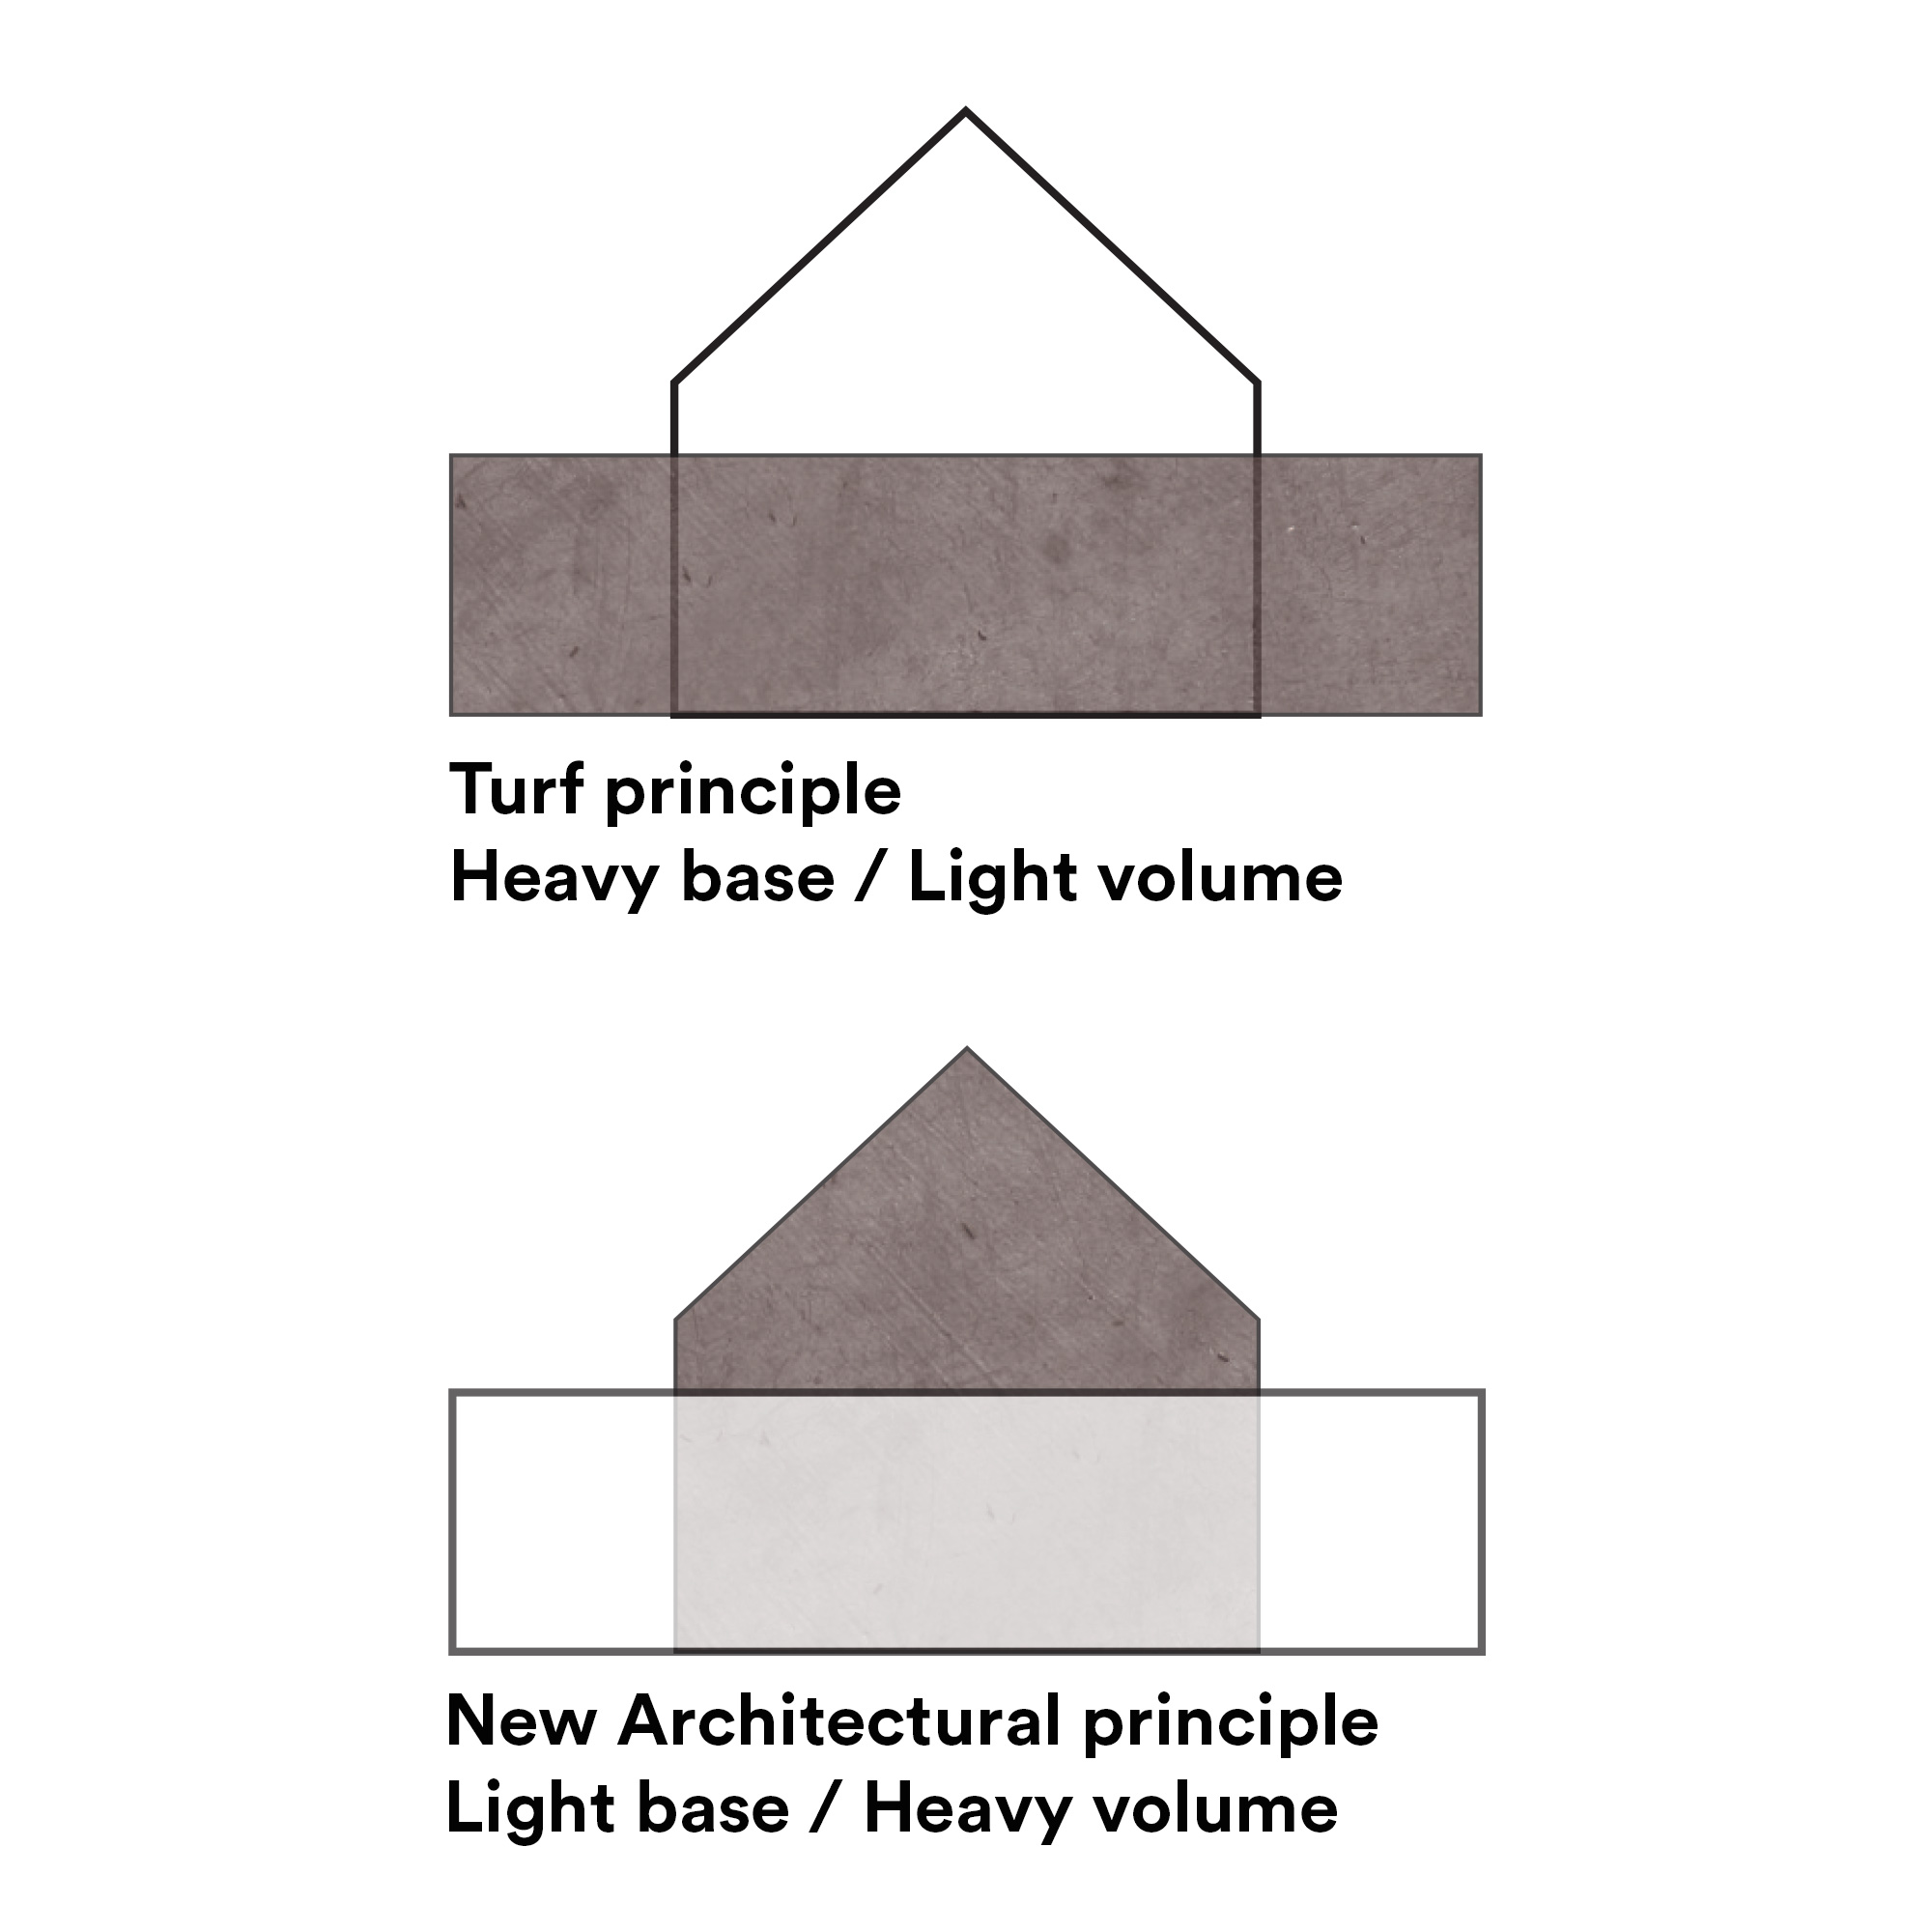 Explanation of the turf principle applied for the Red Mountain Resort in an inside-out way